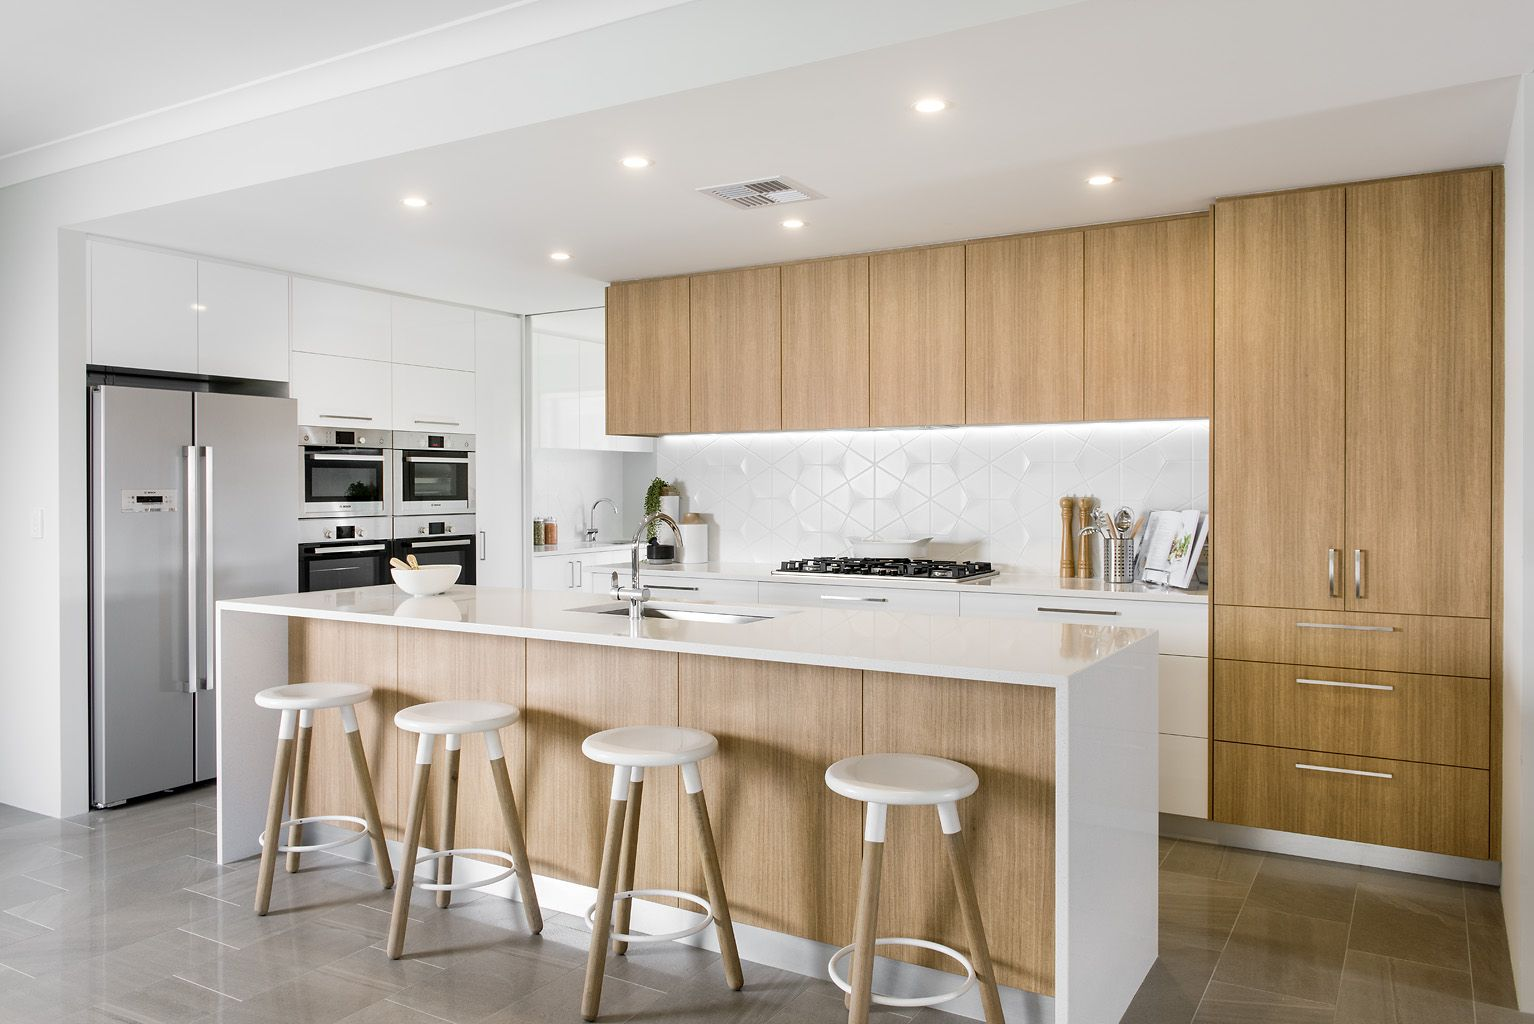 Lauren Steadman Homes \'My Place\' Kitchen with stone bench tops ...